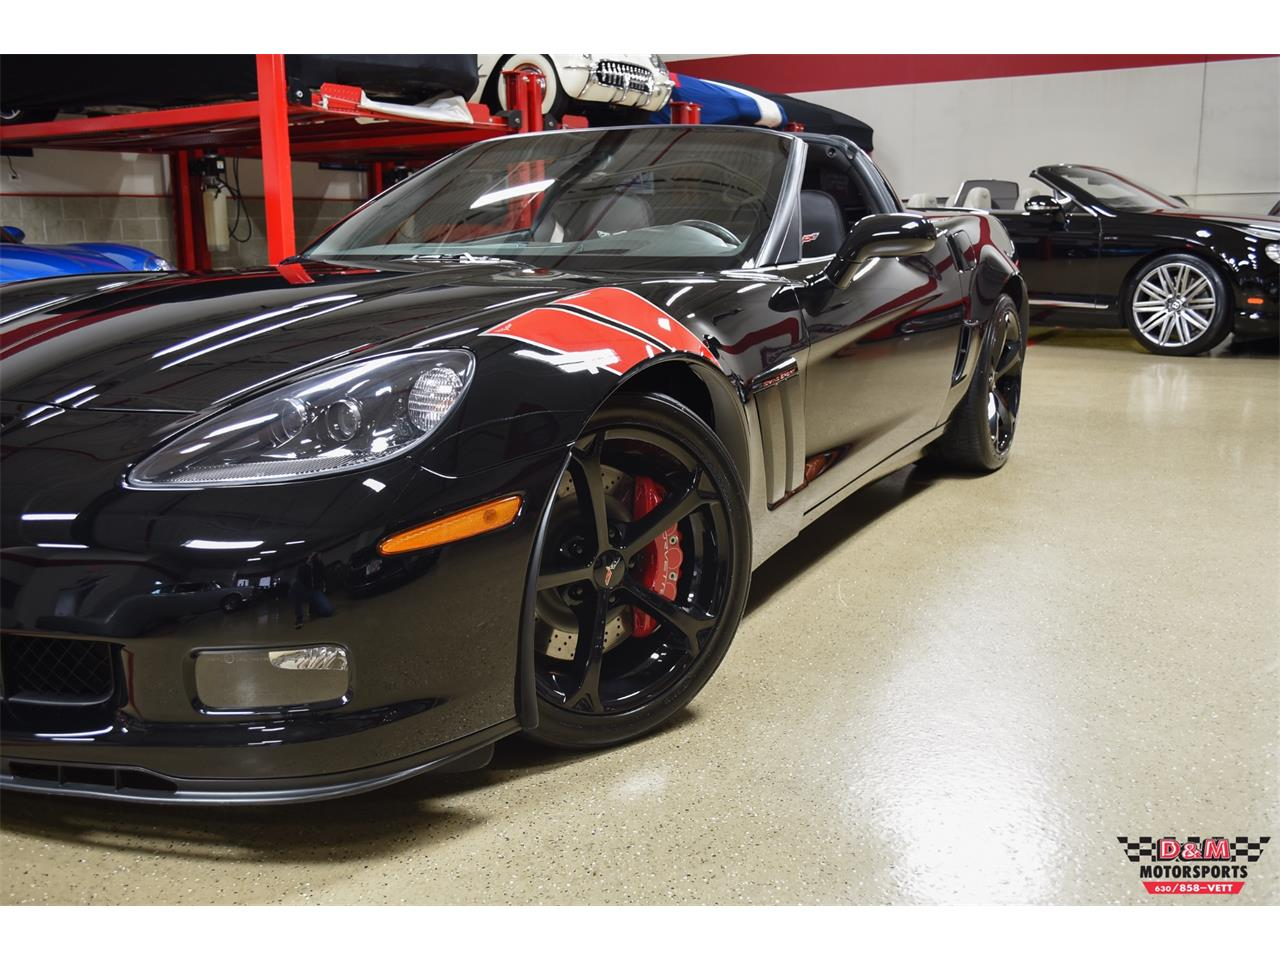 Large Picture of '10 Chevrolet Corvette located in Glen Ellyn Illinois Offered by D & M Motorsports - PUJ0